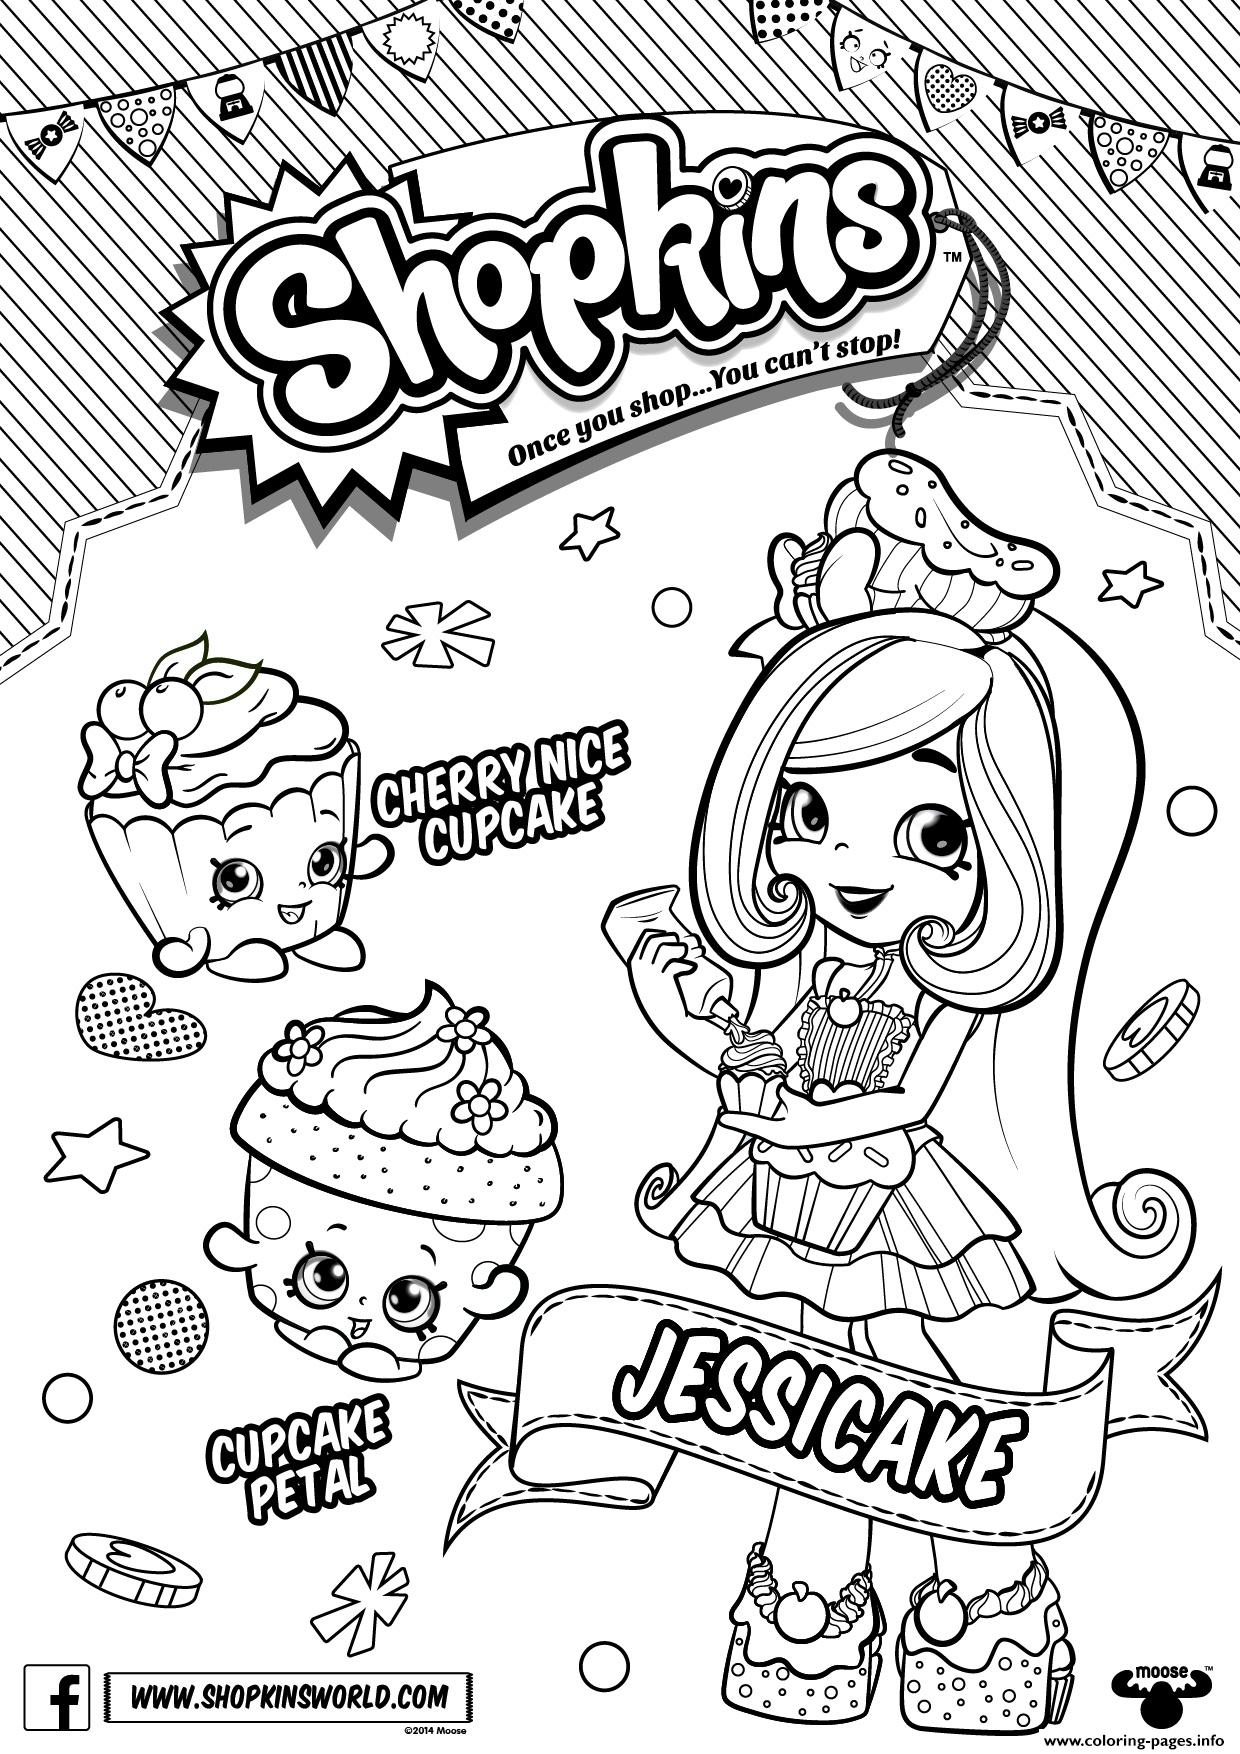 Jessicake Shopkins Shoppies Coloring Pages